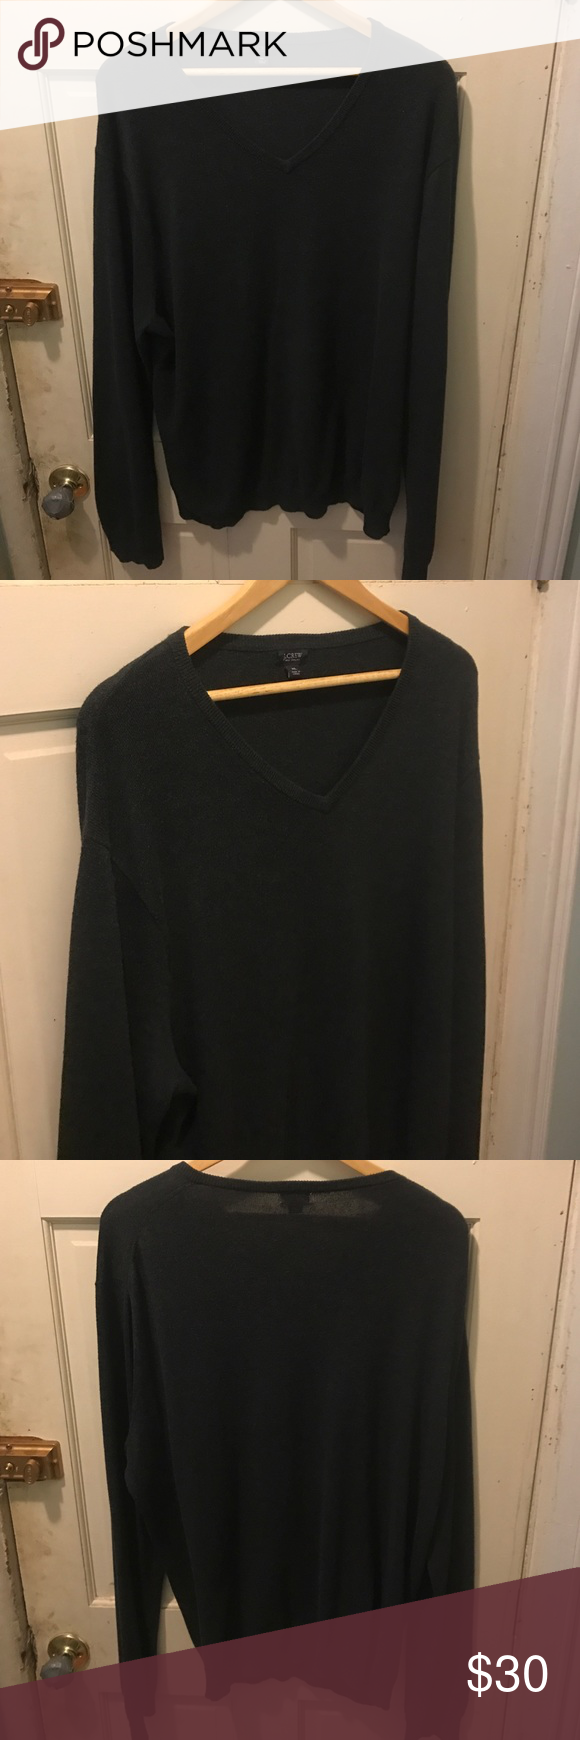 V-neck sweater black J. Crew size XL Nice sweater width 24 inches ...